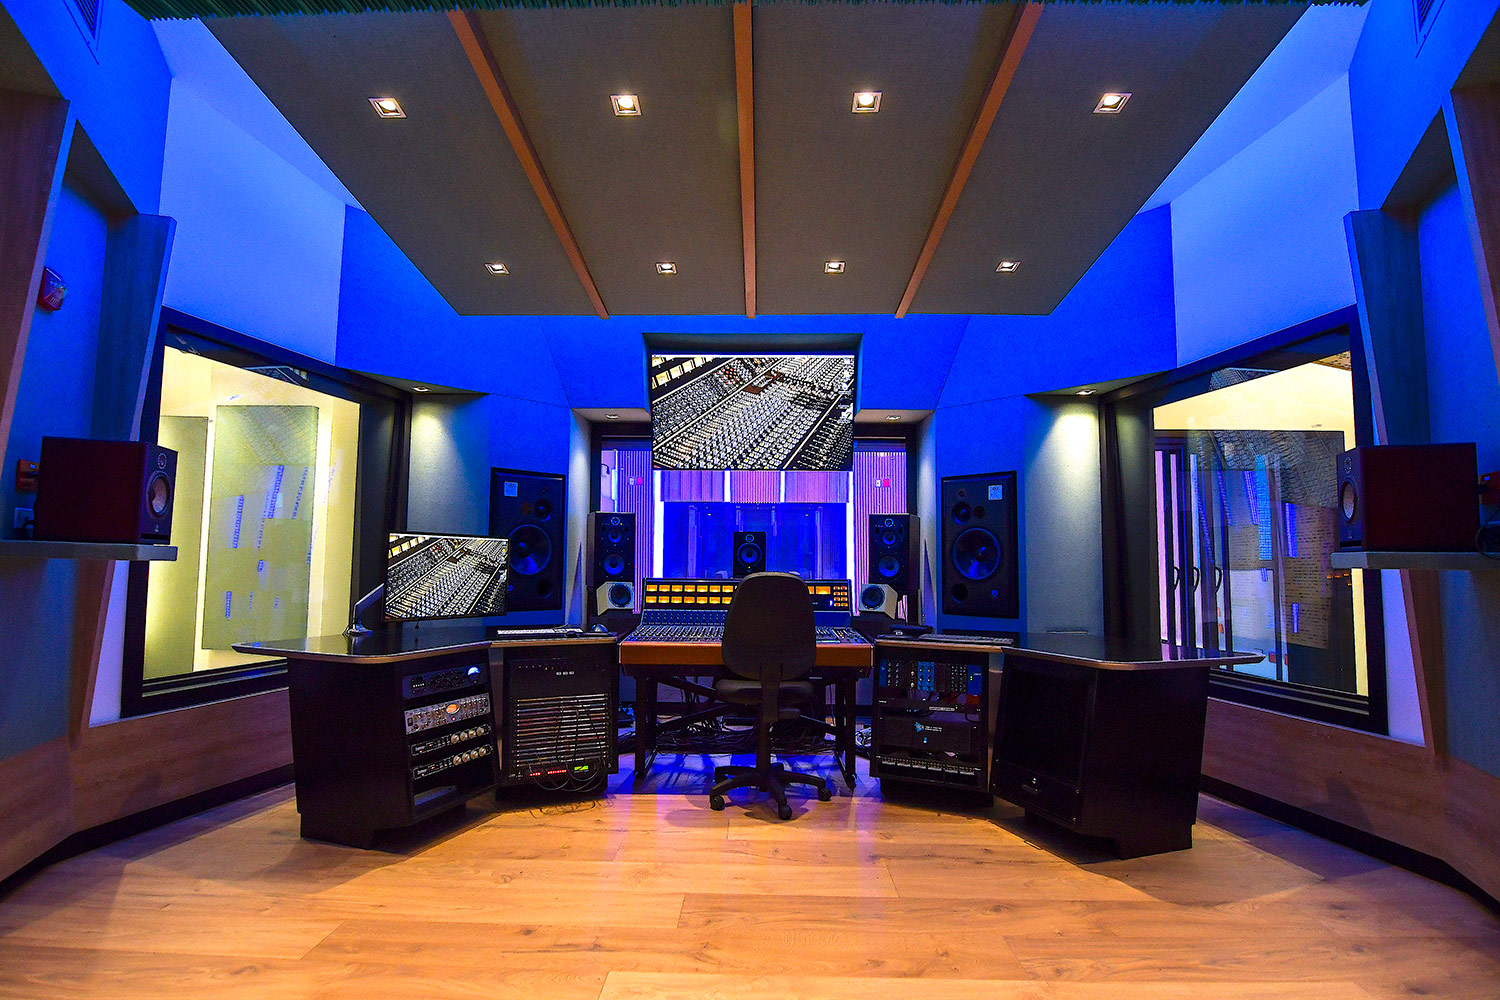 Universidad ICESI new world-class recording studio facility designed by WSDG. Control Room A.